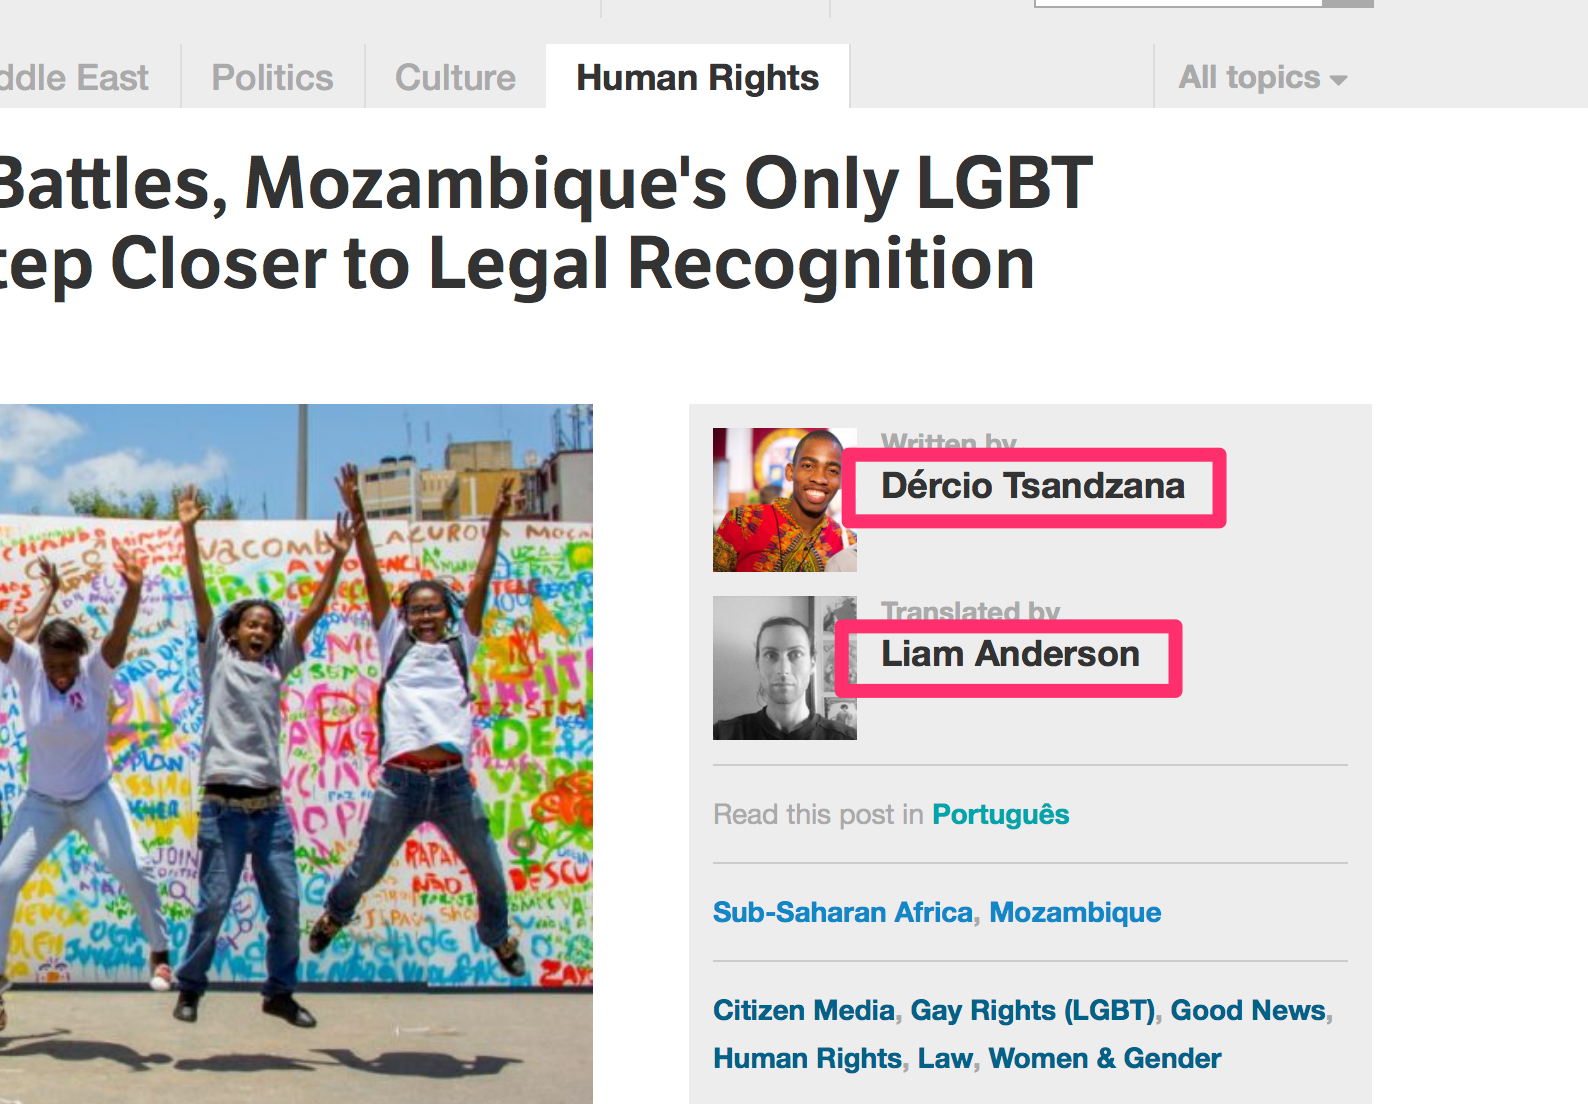 After_10_Years_of_Legal_Battles__Mozambique's_Only_LGBT_Organization_Takes_a_Step_Closer_to_Legal_Recognition_·_Global_Voices.png